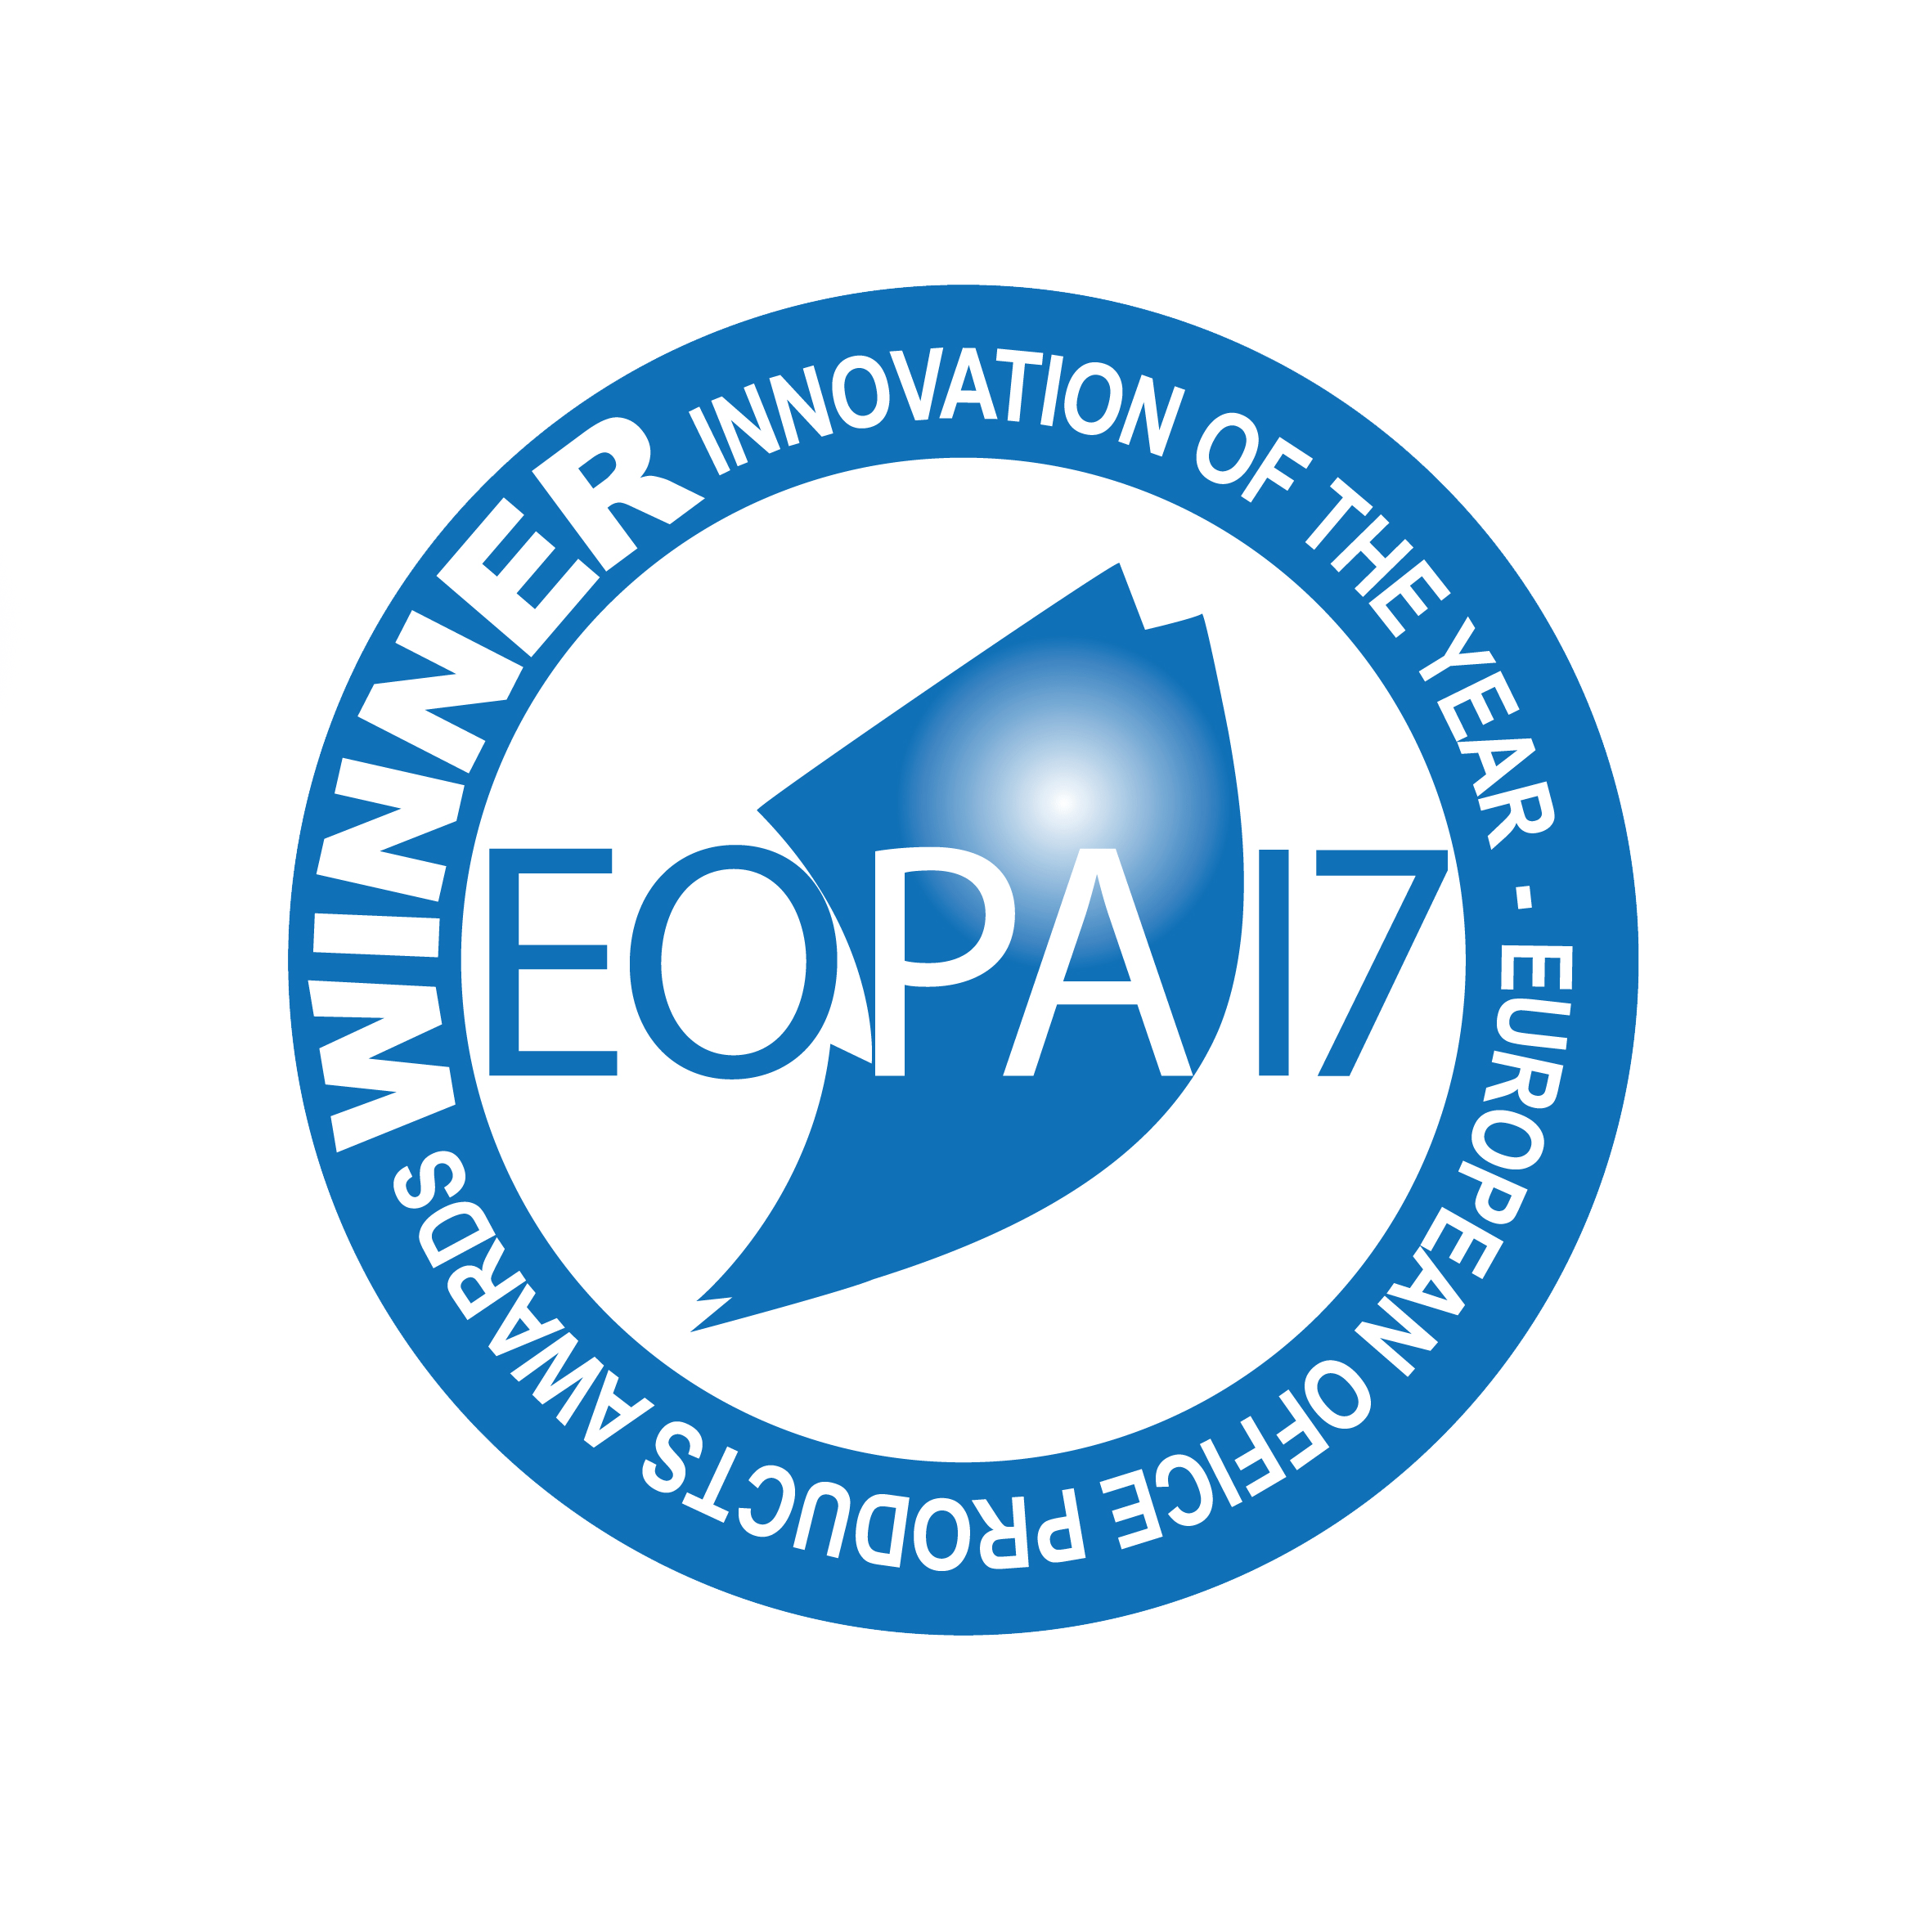 EOPA – European Office Products Awards